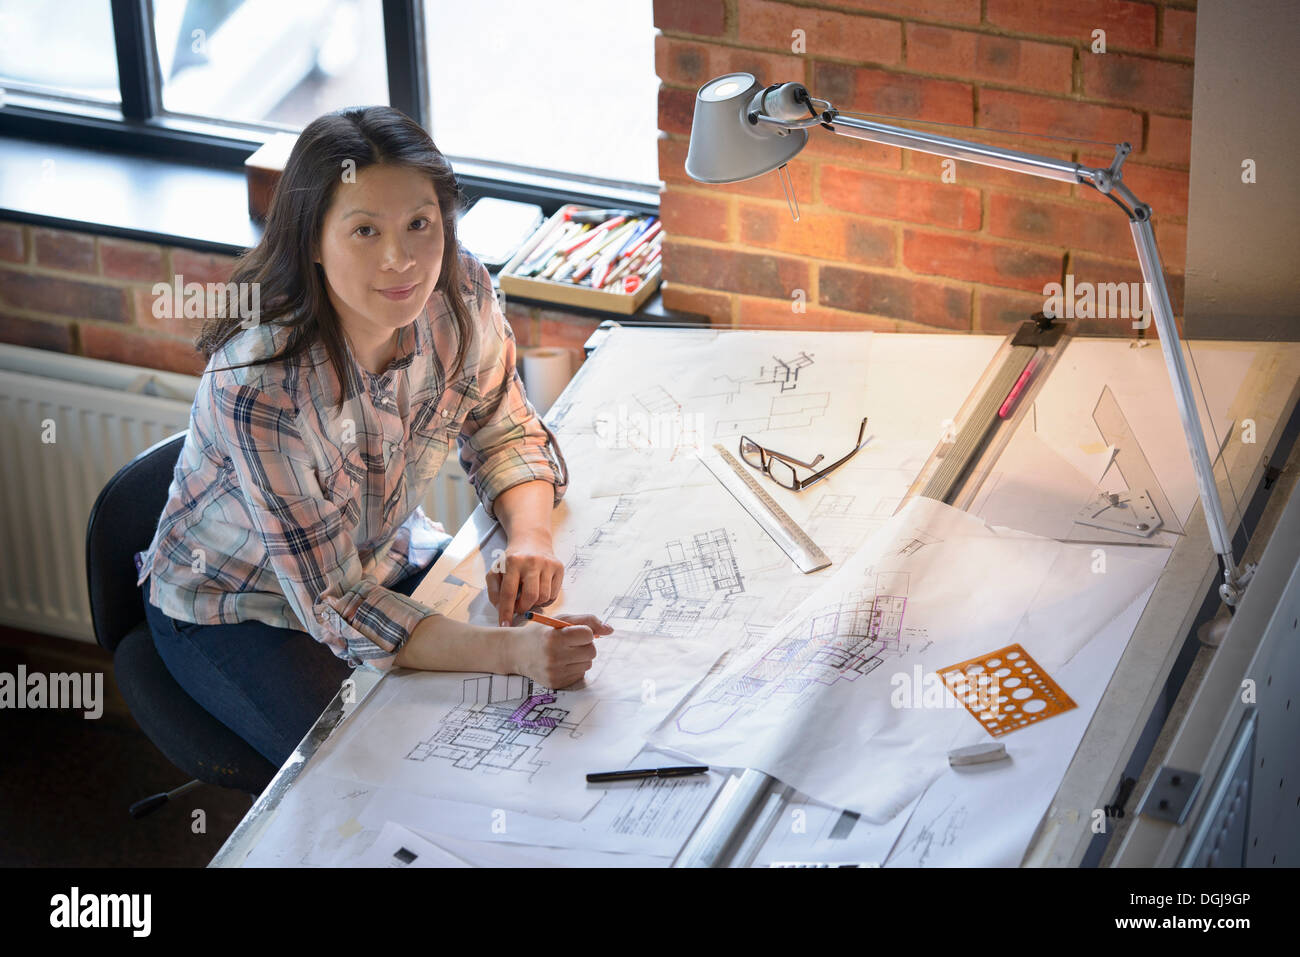 Architect drawing plans at drawing board, portrait - Stock Image